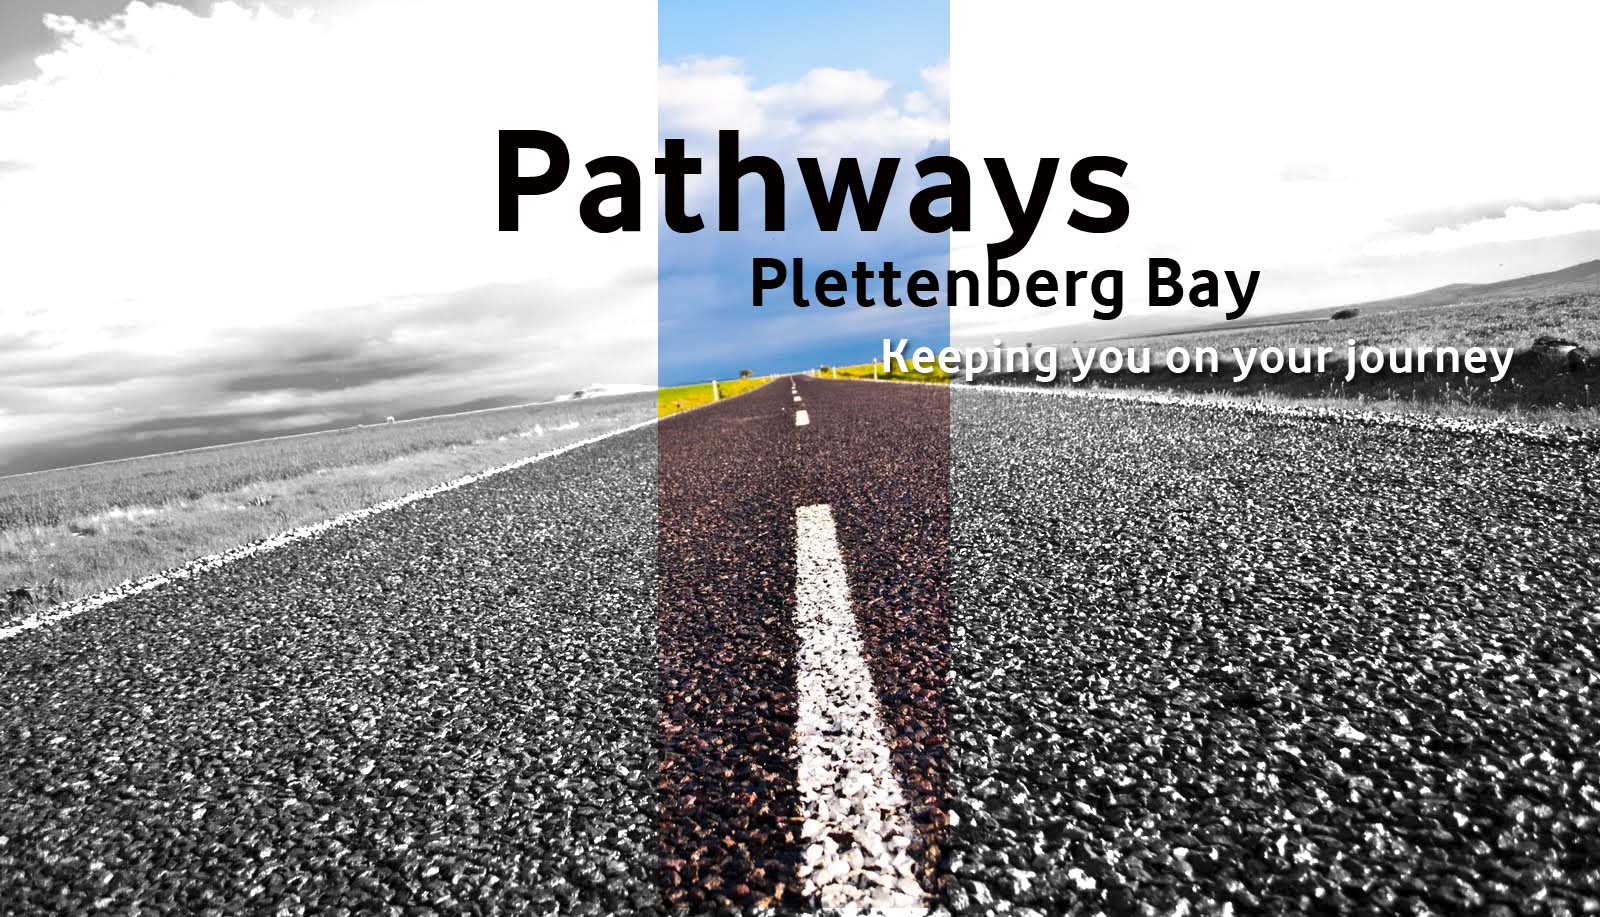 heroin addiction pathways to treatment Call now  1-877-254-3348 on this page, you will find all services provided by pathways - addiction resource centre in penticton, british columbia.